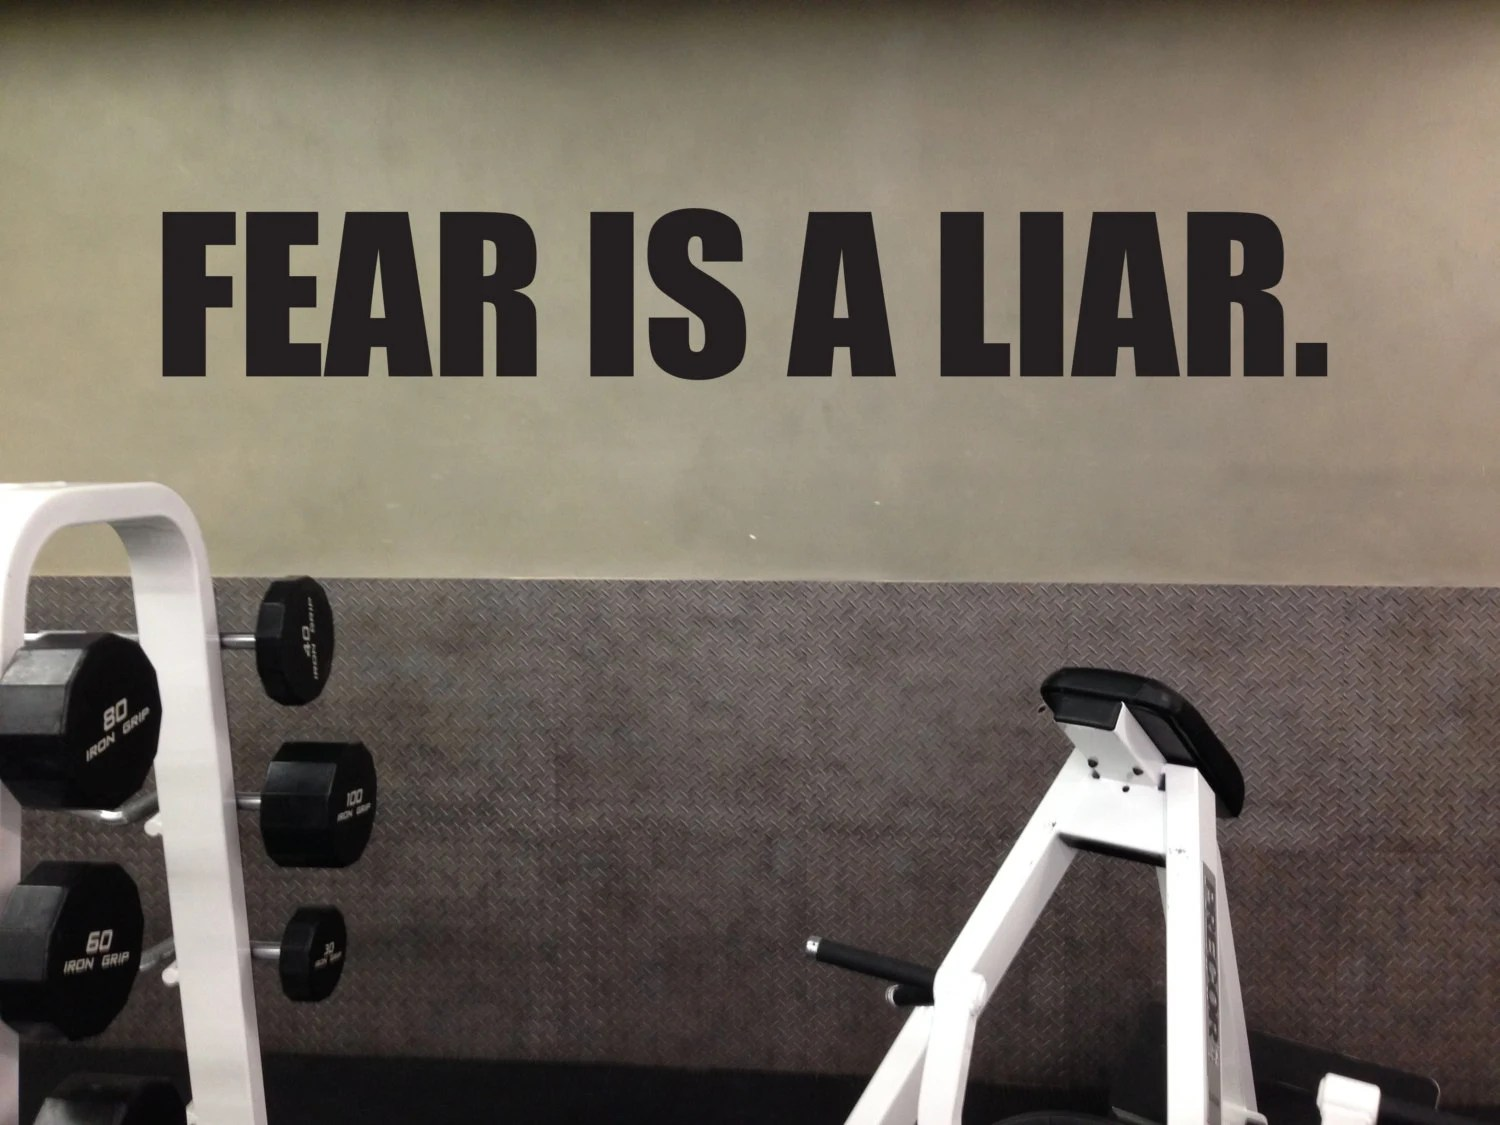 Garage Gym Wall Decor Fitness Motivational Decal Fear Is A Liar Home Gym Vinyl Decal 102